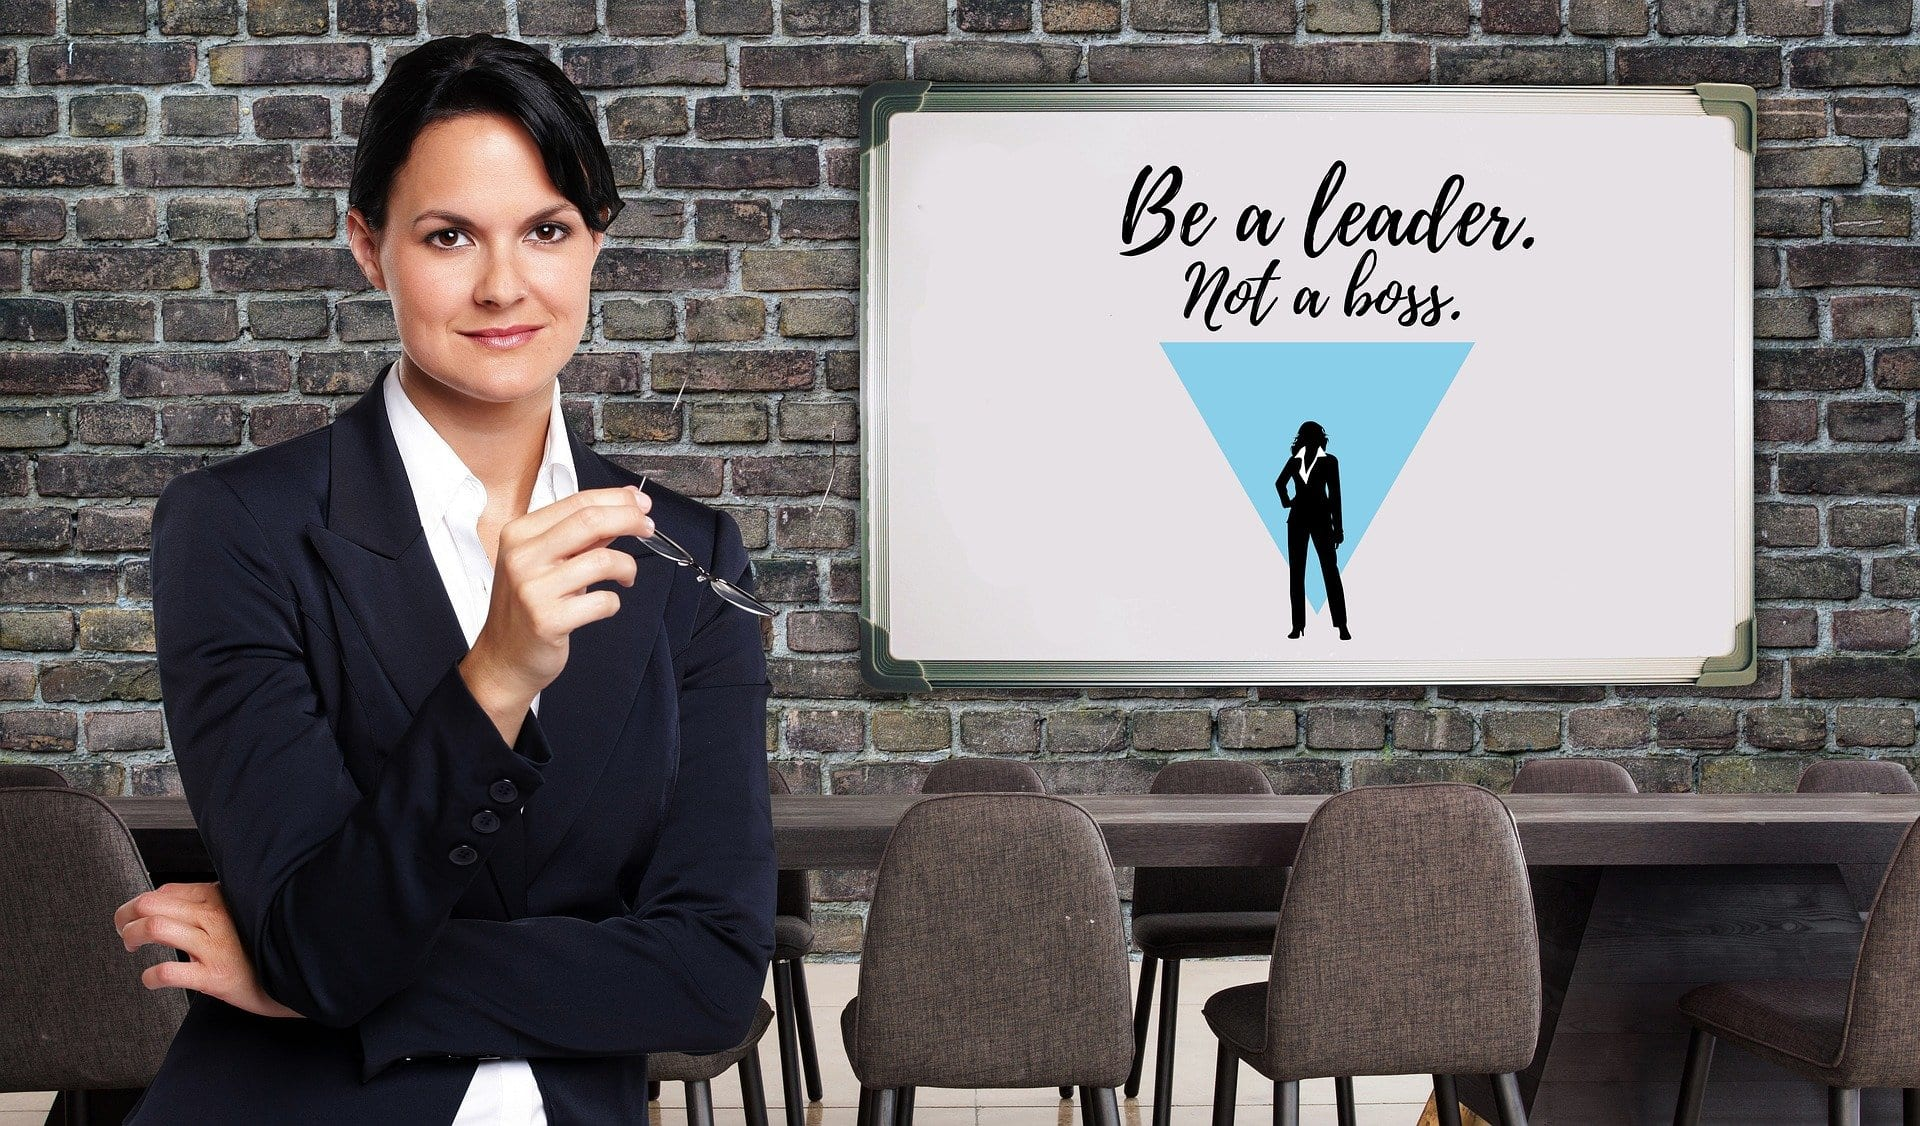 Why Is It Important To Have Good Leadership Skills?